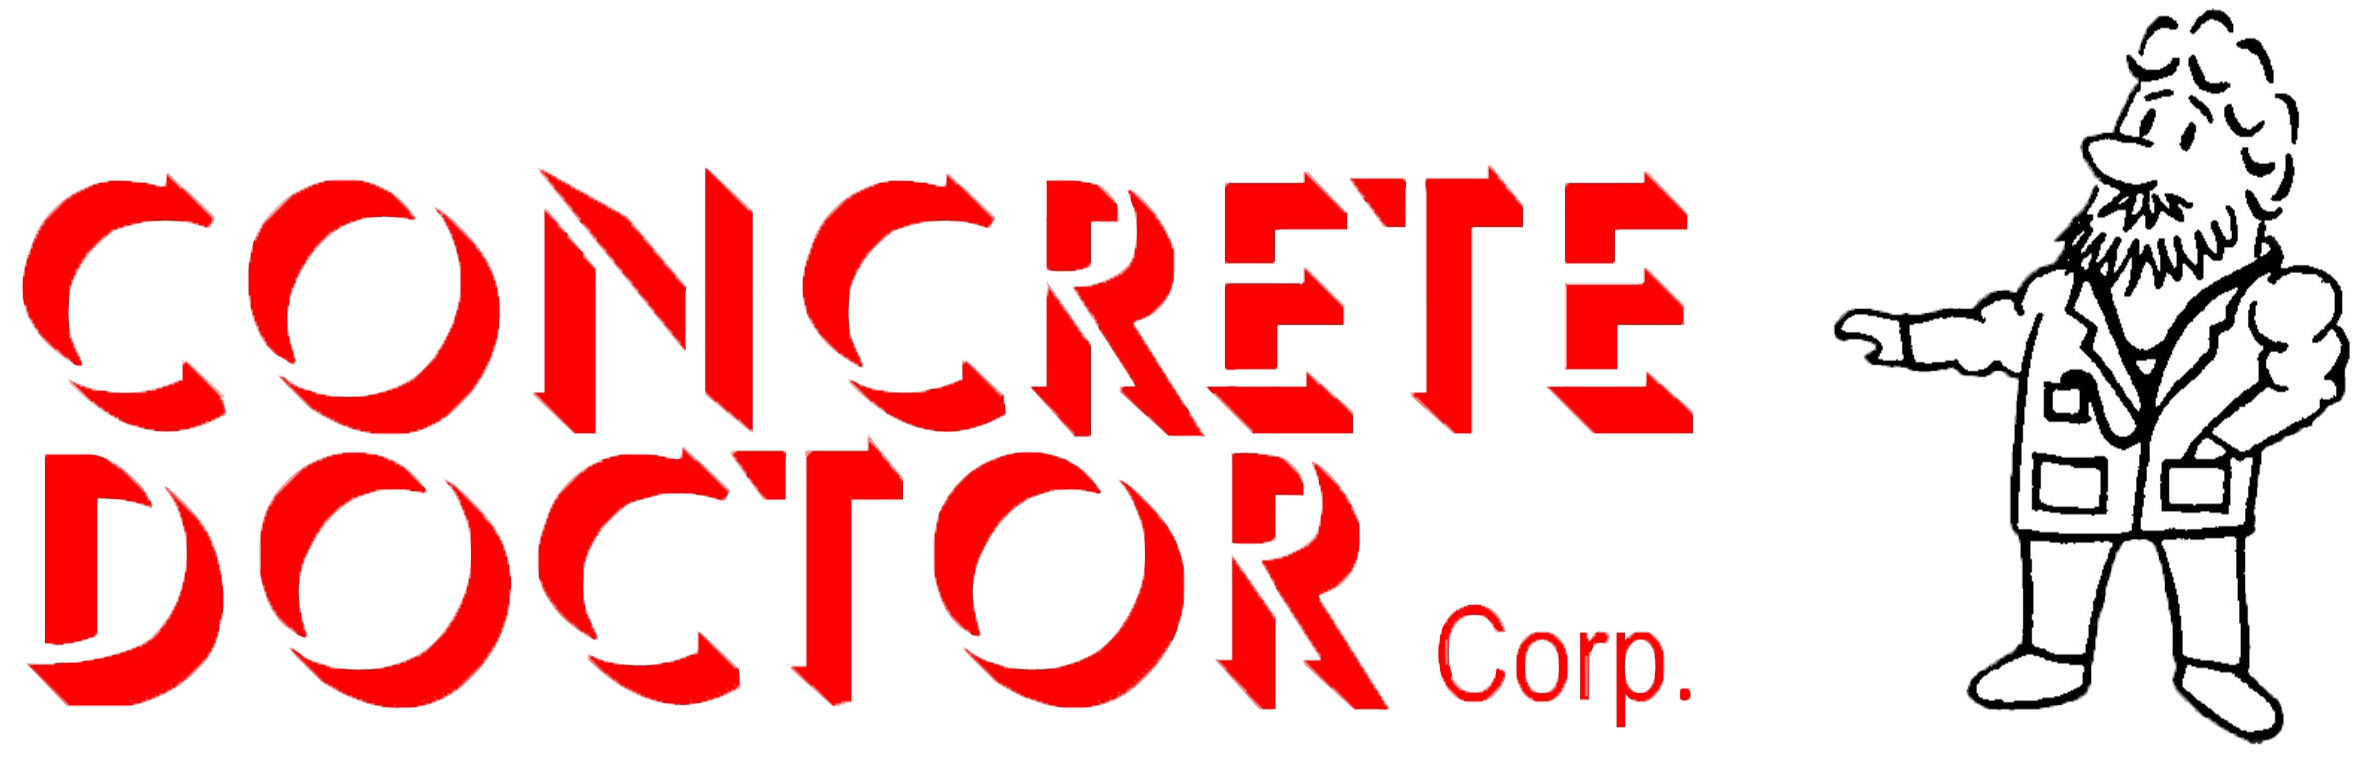 Concrete Doctor Corp.